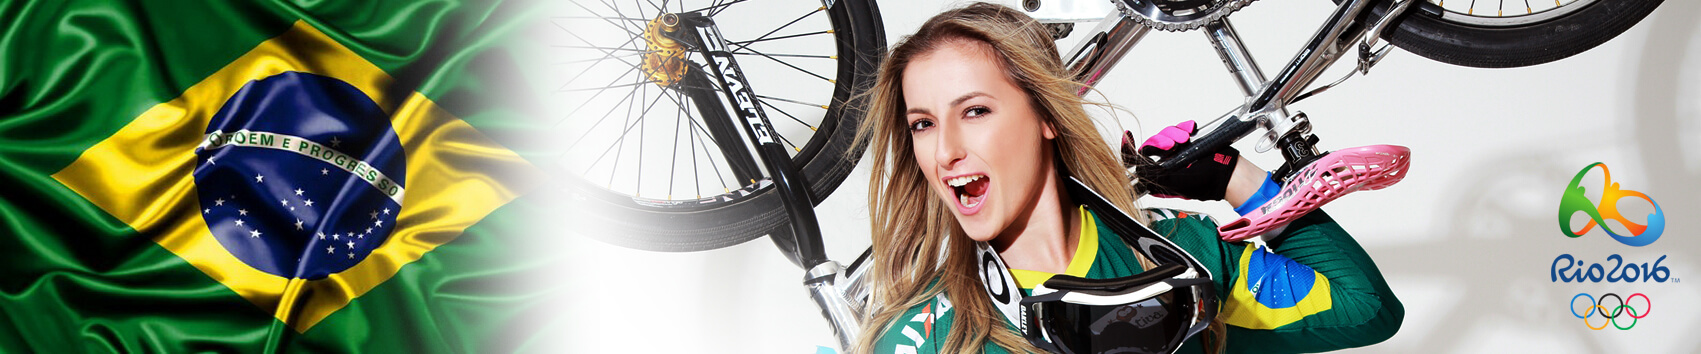 priscilla-stevaux-carnaval-olympic-interview-fifteenbmx